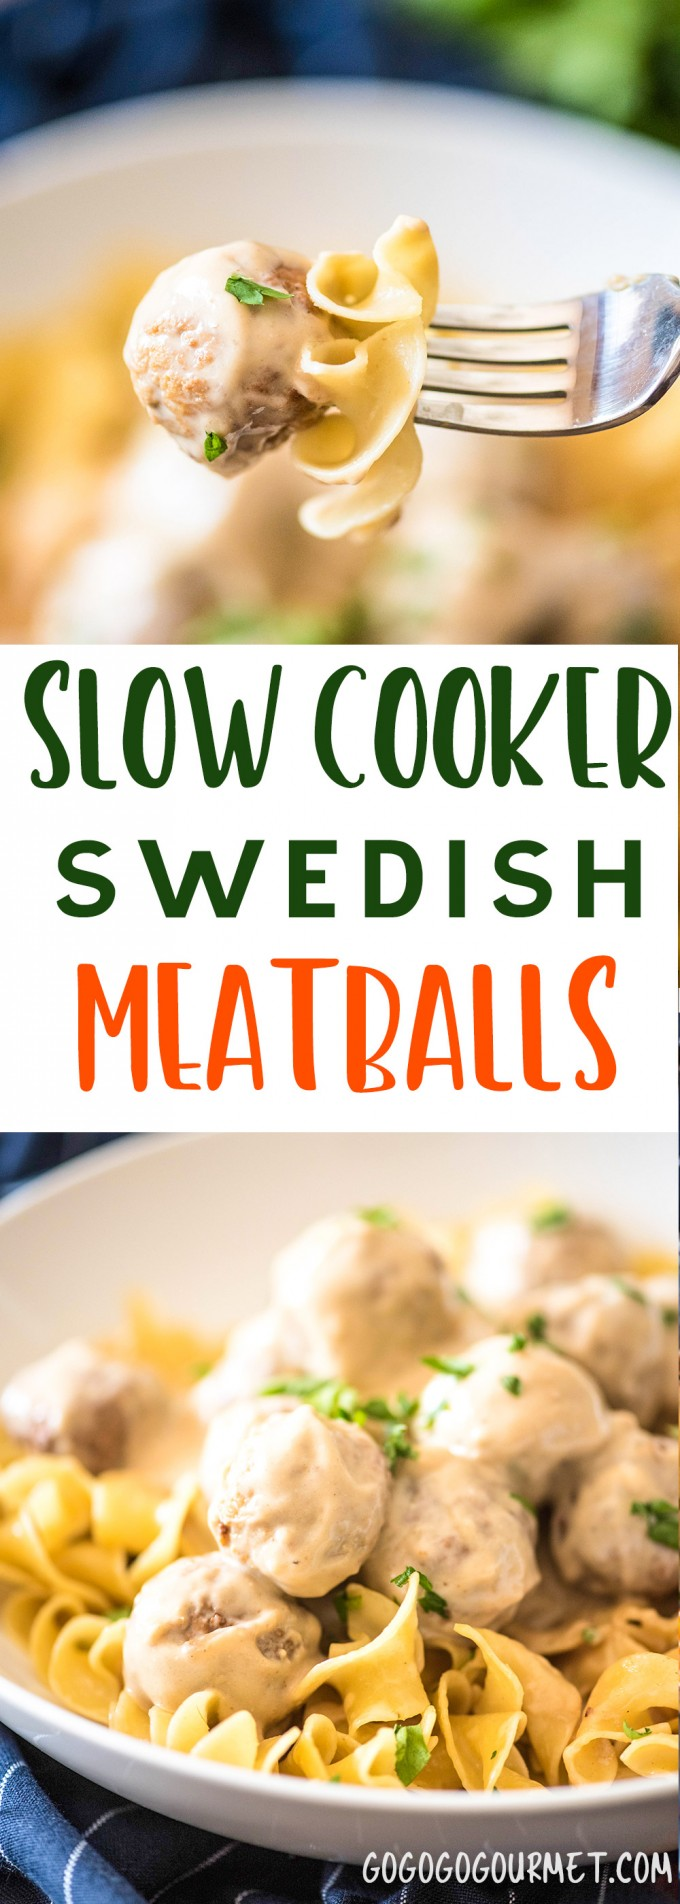 These Slow Cooker Swedish Meatballs are the perfect back-to-school dinner that everyone will love. Only six ingredients in this fast and easy meal!